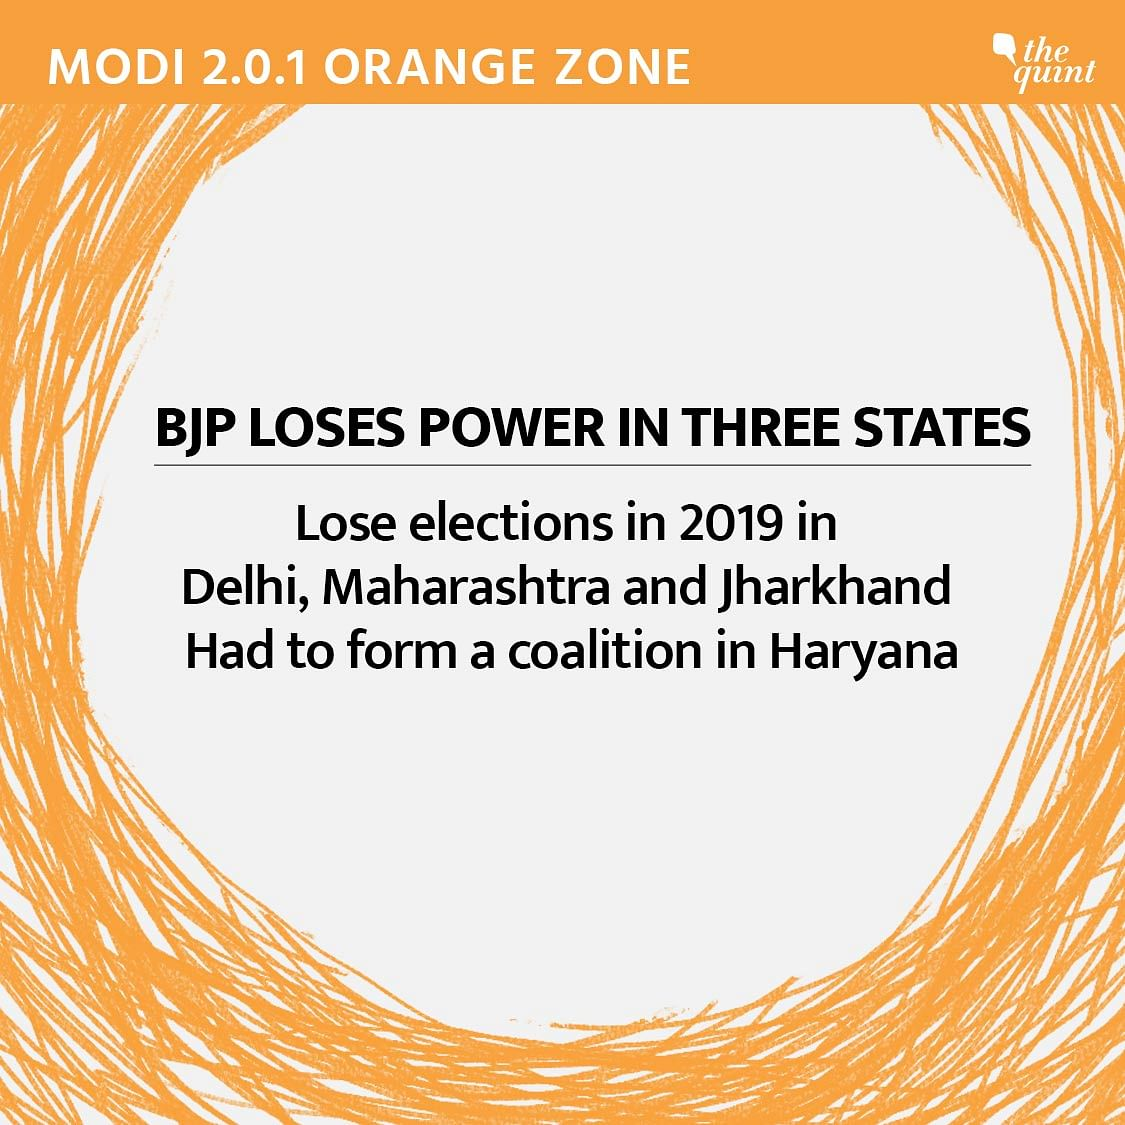 State elections in 2019 did not go the BJP's way.